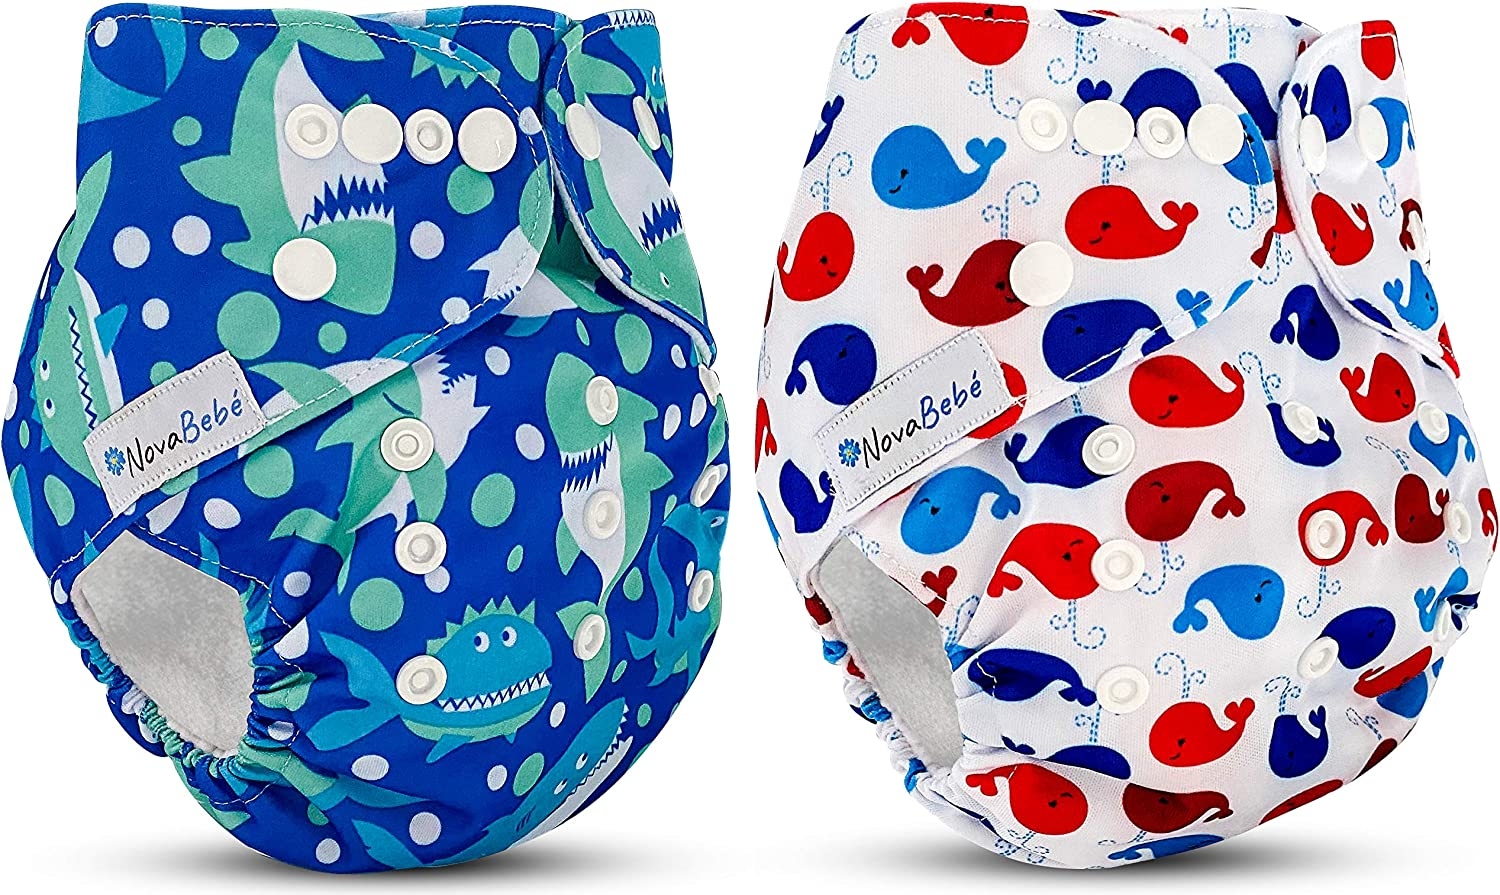 NOVABEBÉ♥ Cloth Diapers Washable / Reusable Baby Swim Diapers, Pañales Ecologicos Lavables Babies / Toddlers (8 –36 lbs) (for Boys) Reusable Diapers Made with Quality (Shark-Whale) Without Insert